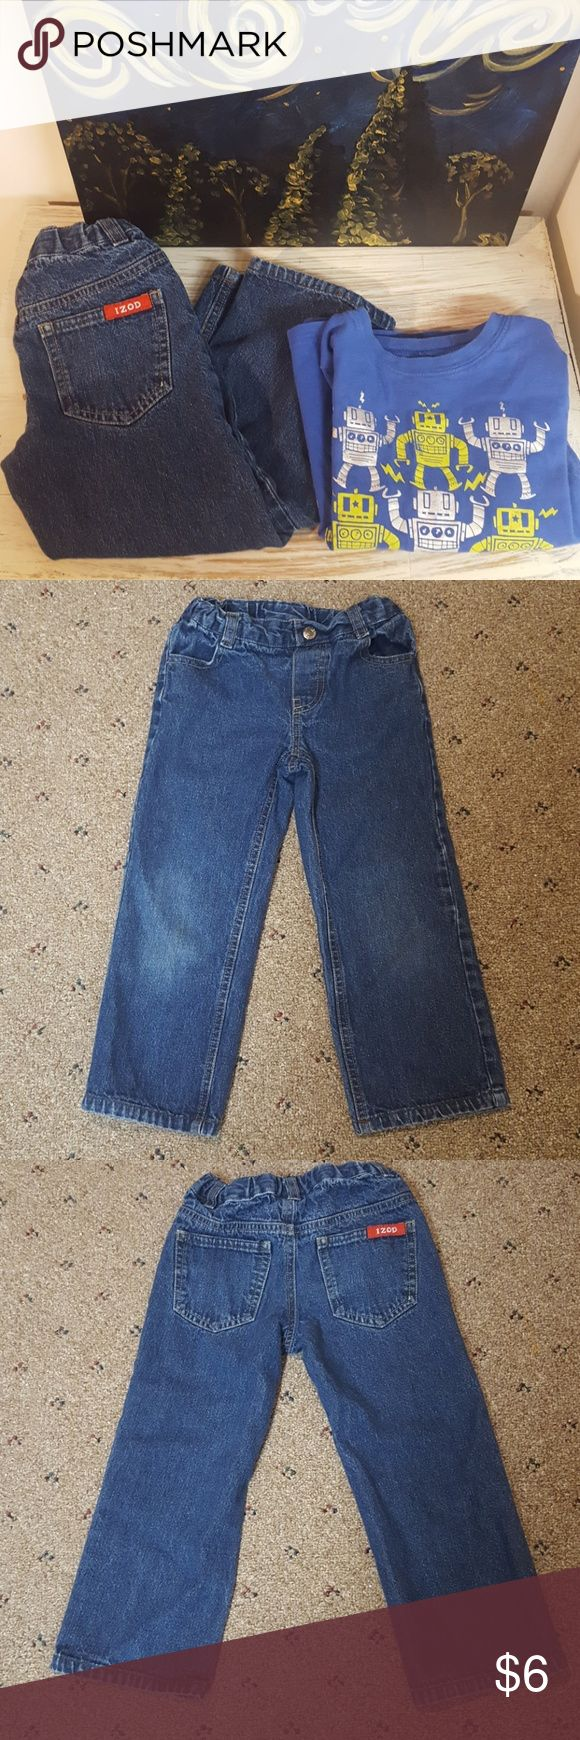 4T Boys Jeans and Long Sleeve Shirt IZOD boys 4T jeans in EUC. 4 pockets. Adjustable elastic band. Jumping Beans long Sleeve 4T shirt with dancing robots. Other